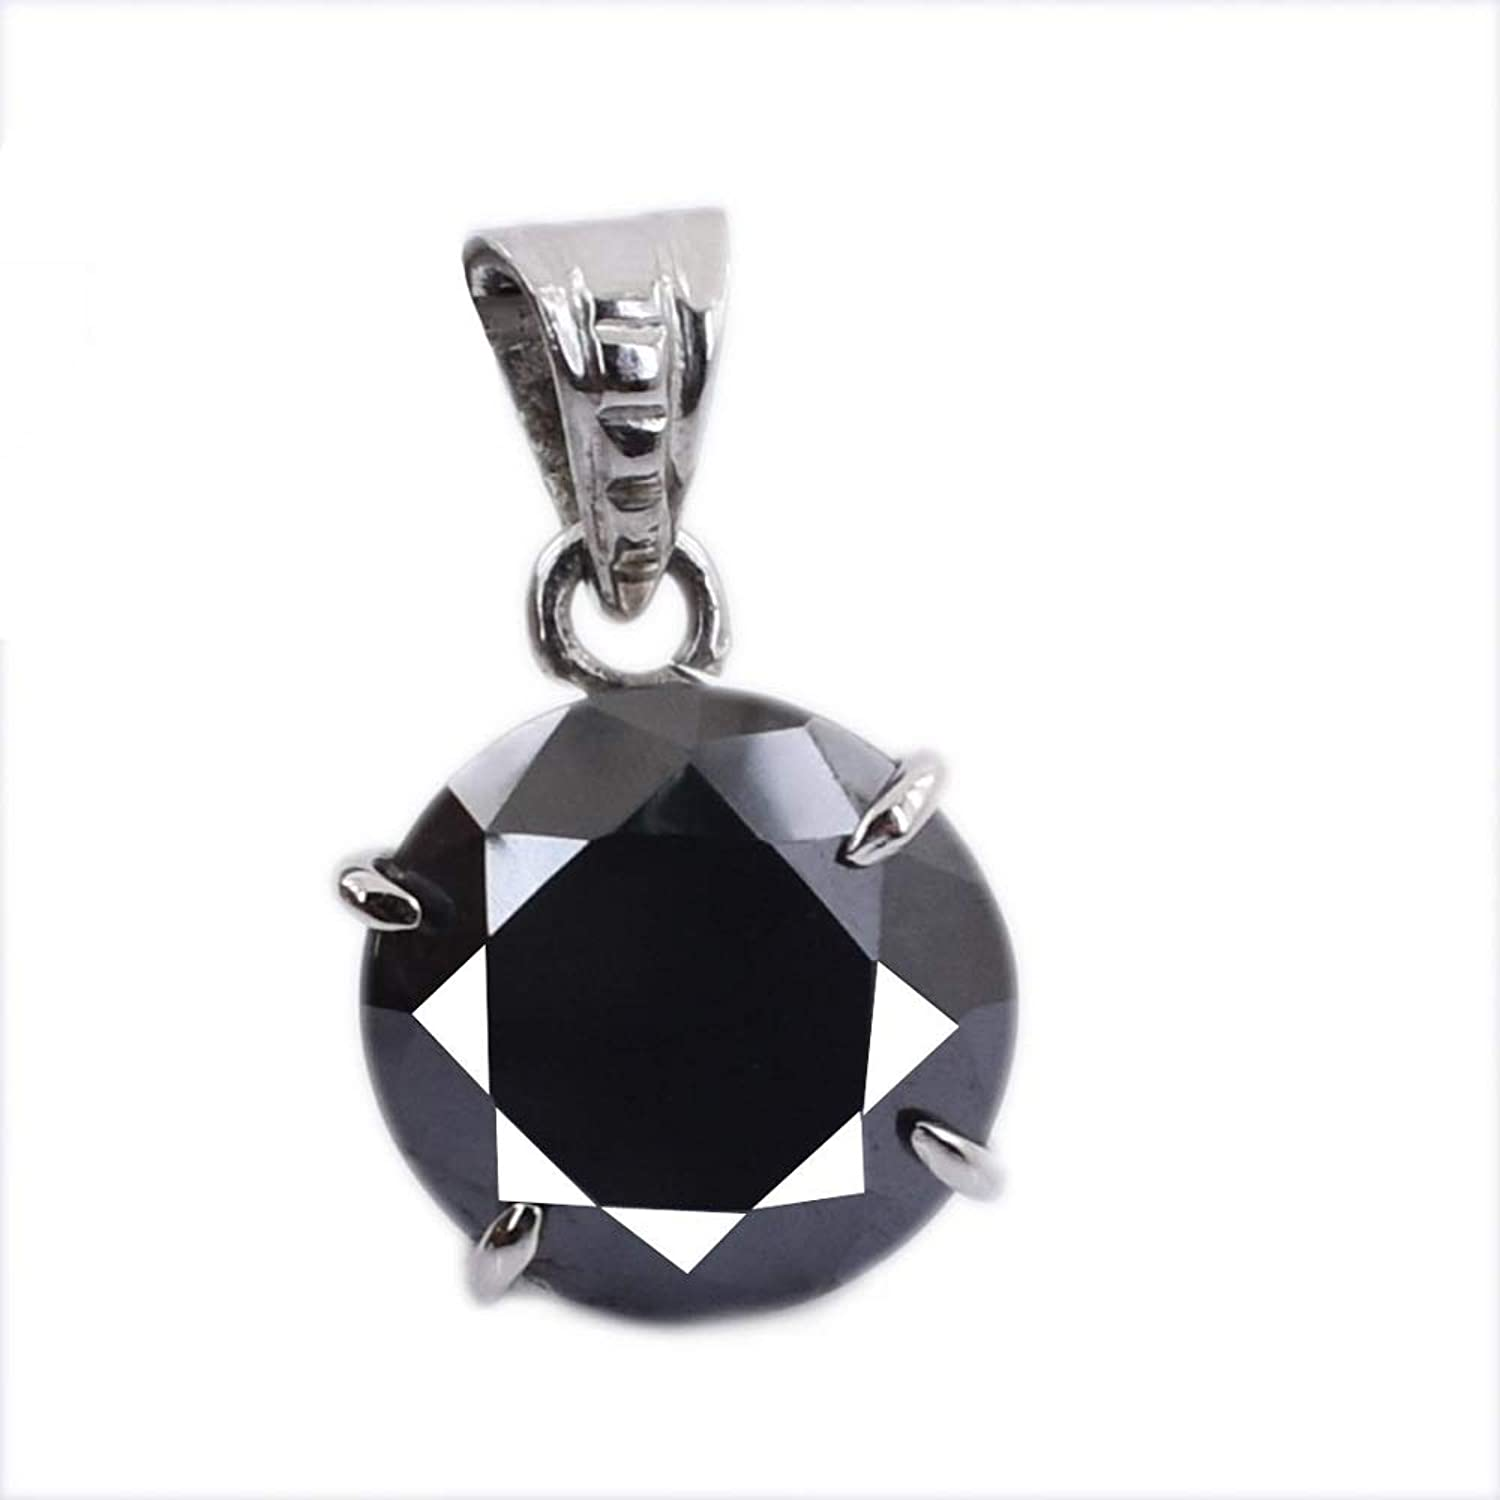 Skyjewels 5.04 Cts Round Cut Black Diamond Solitaire Beautiful Silver Pendant Gift for Wife, Girlfriend, Partner